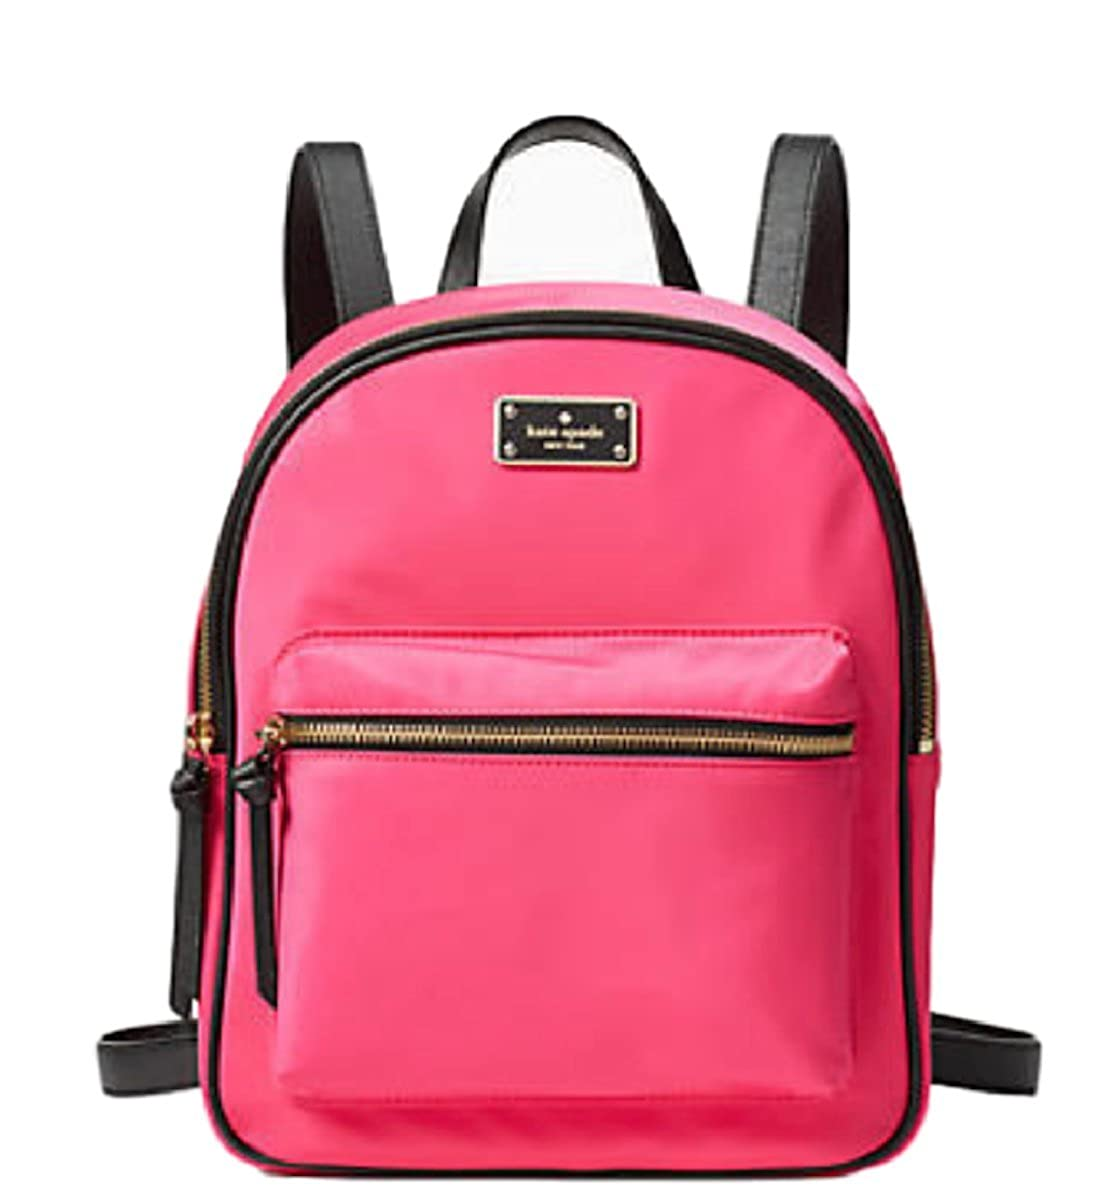 Kate Spade New York Wilson Road Small Bradley Backpack Purse WKRU4717